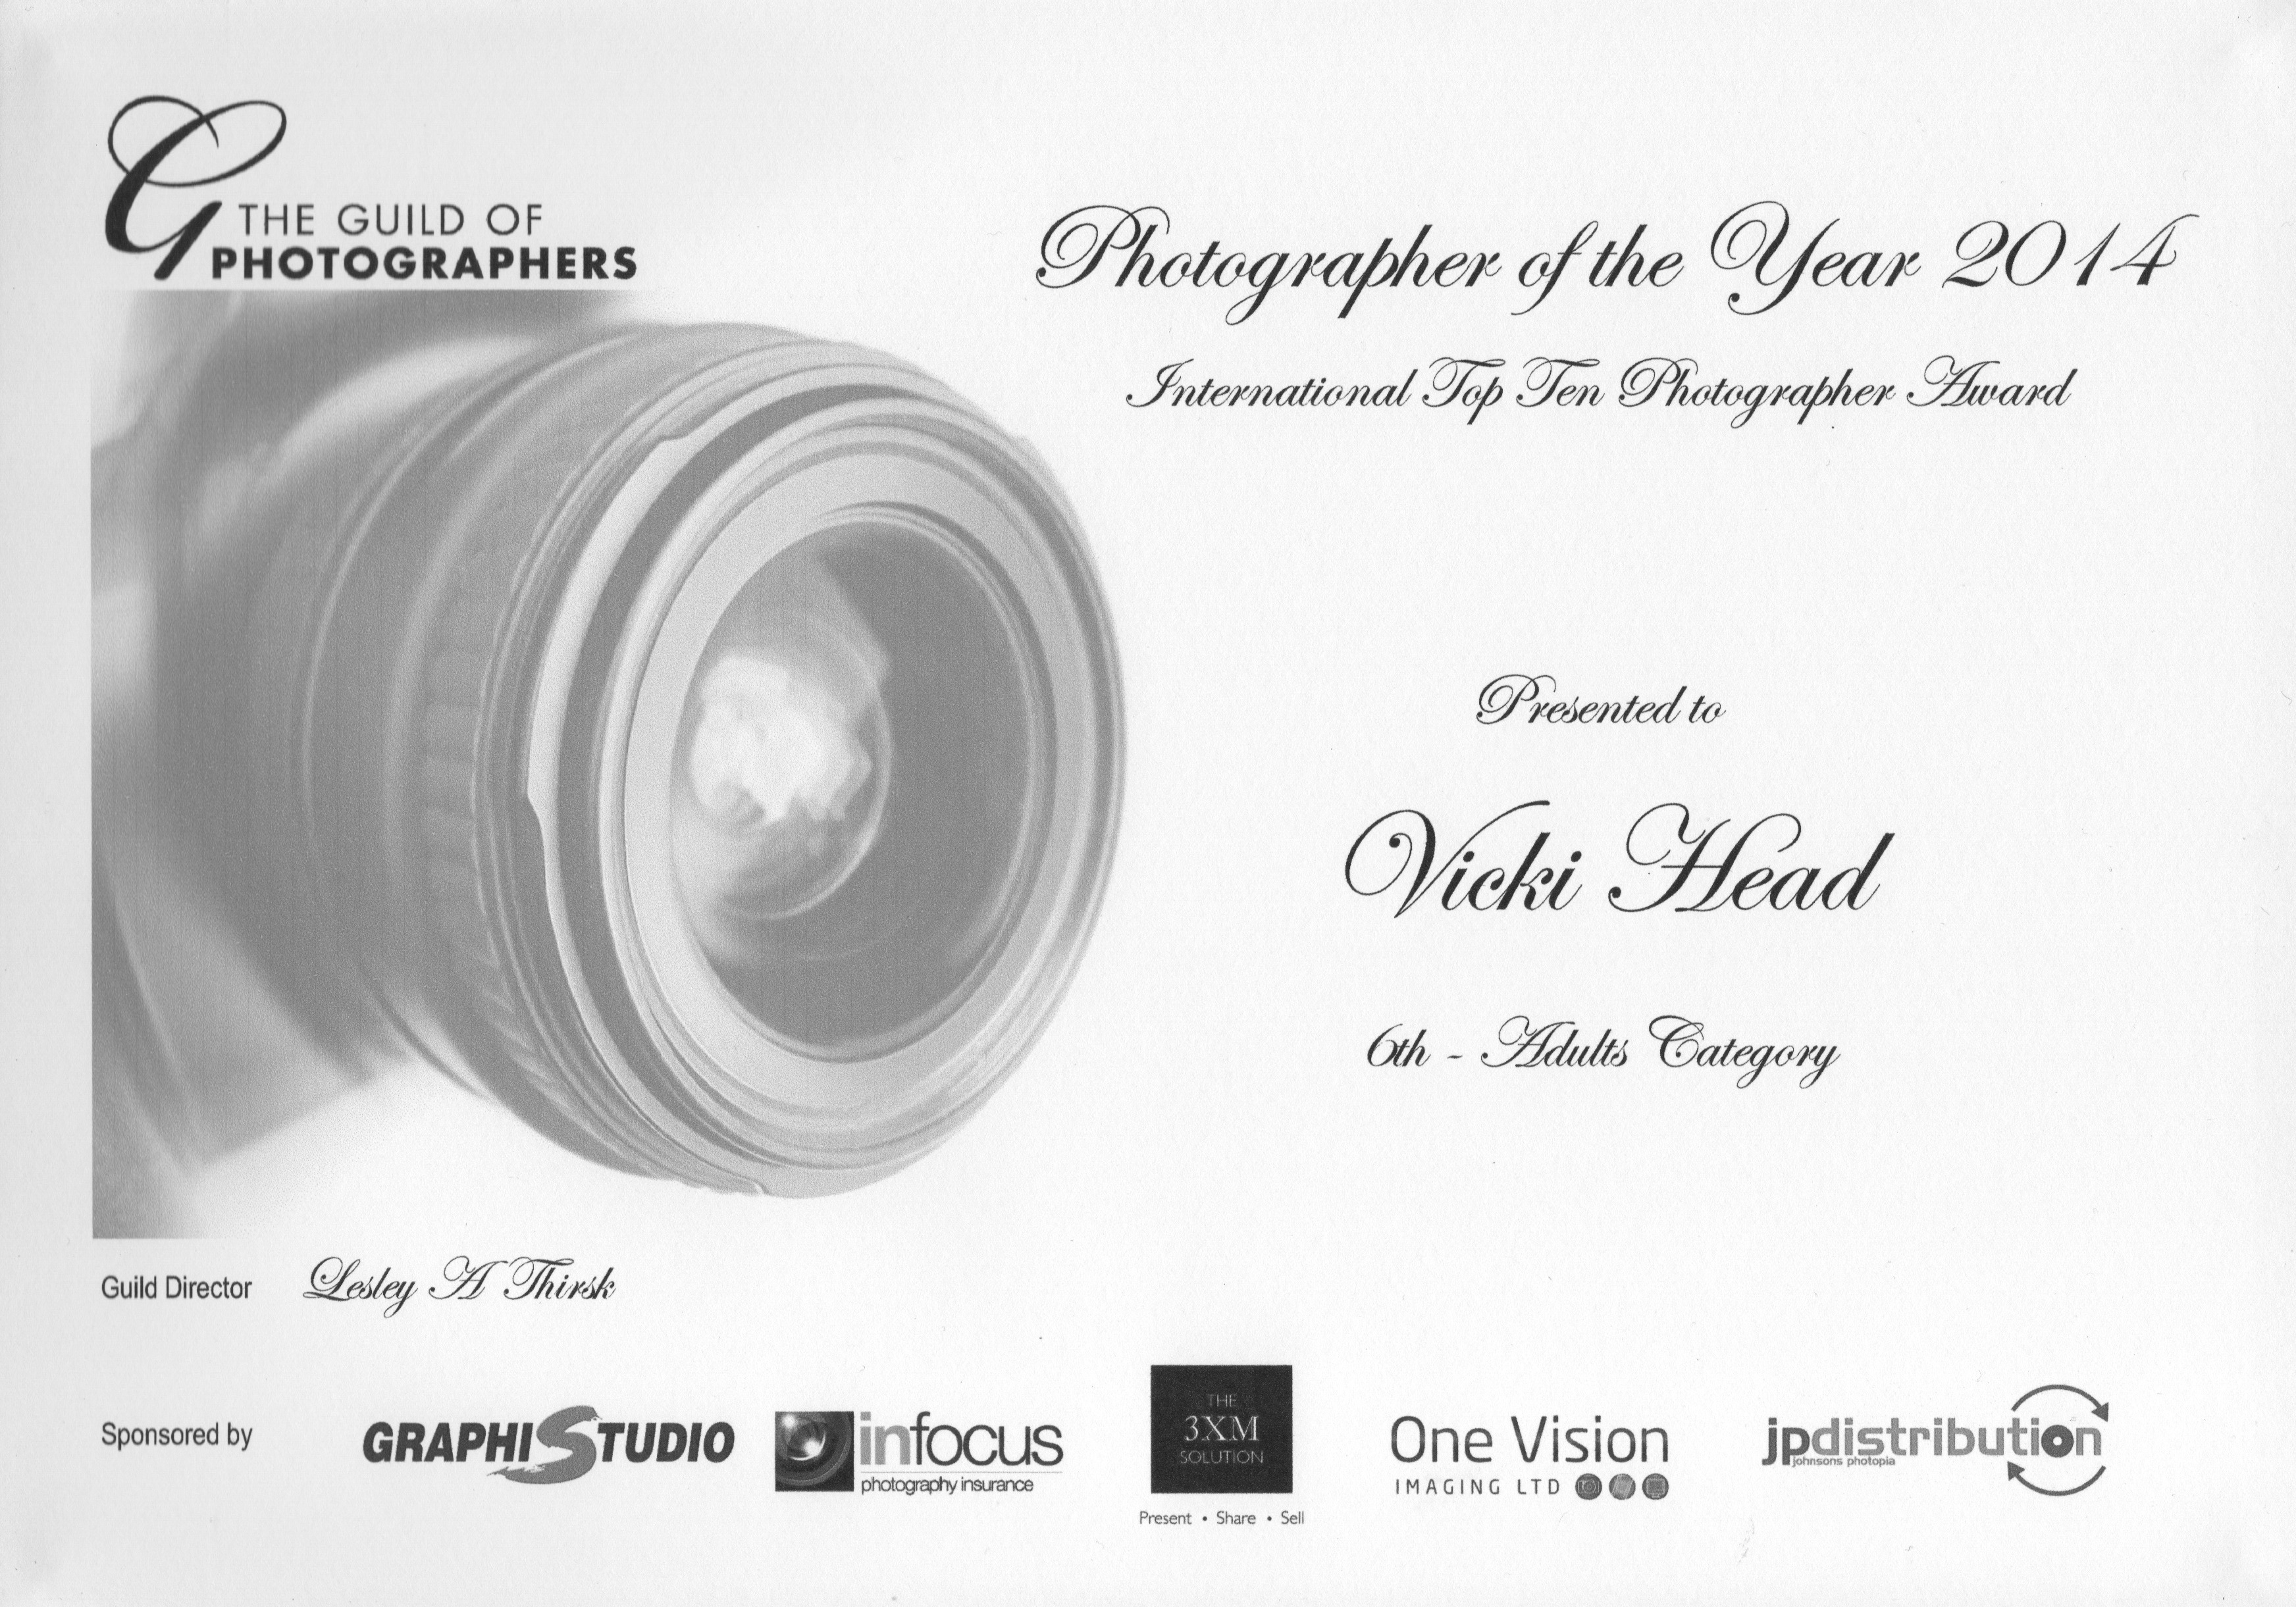 Vicki Head Guild award. Top ten photographer of the year 1